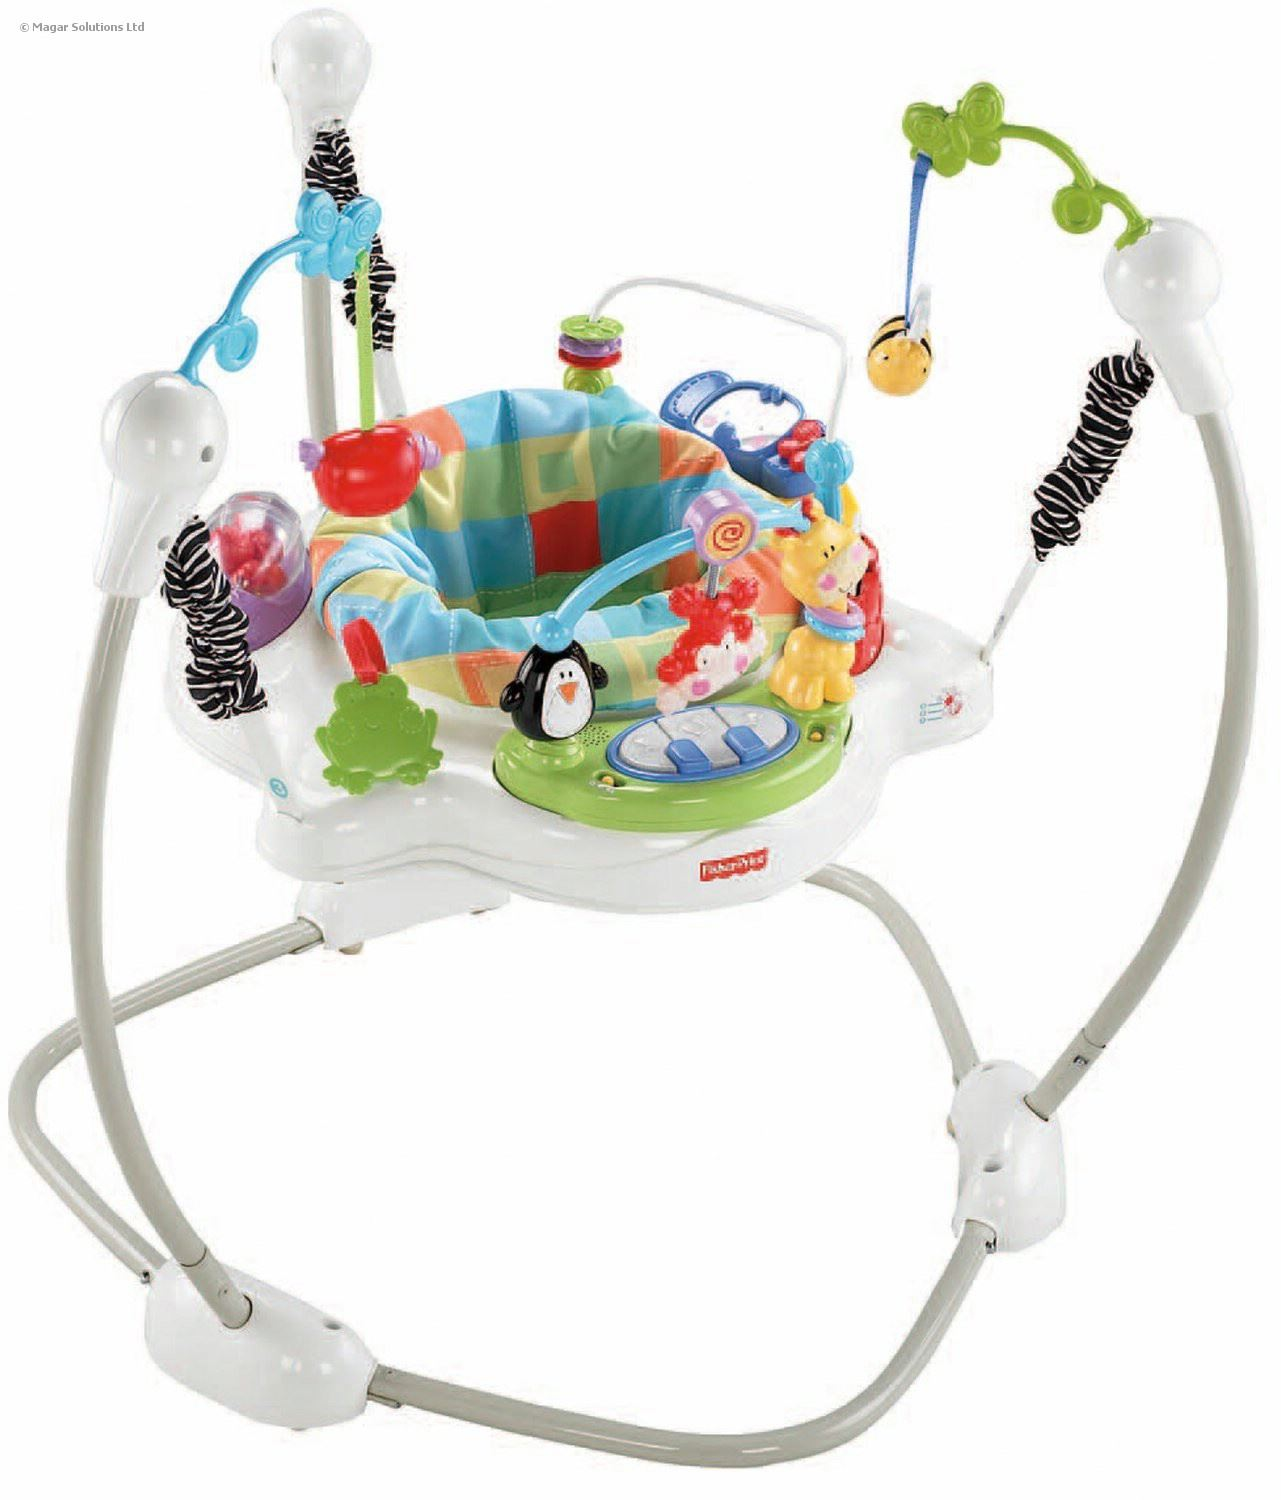 walker bouncing chair pub table and set fisher price discover grow jumperoo baby bouncer